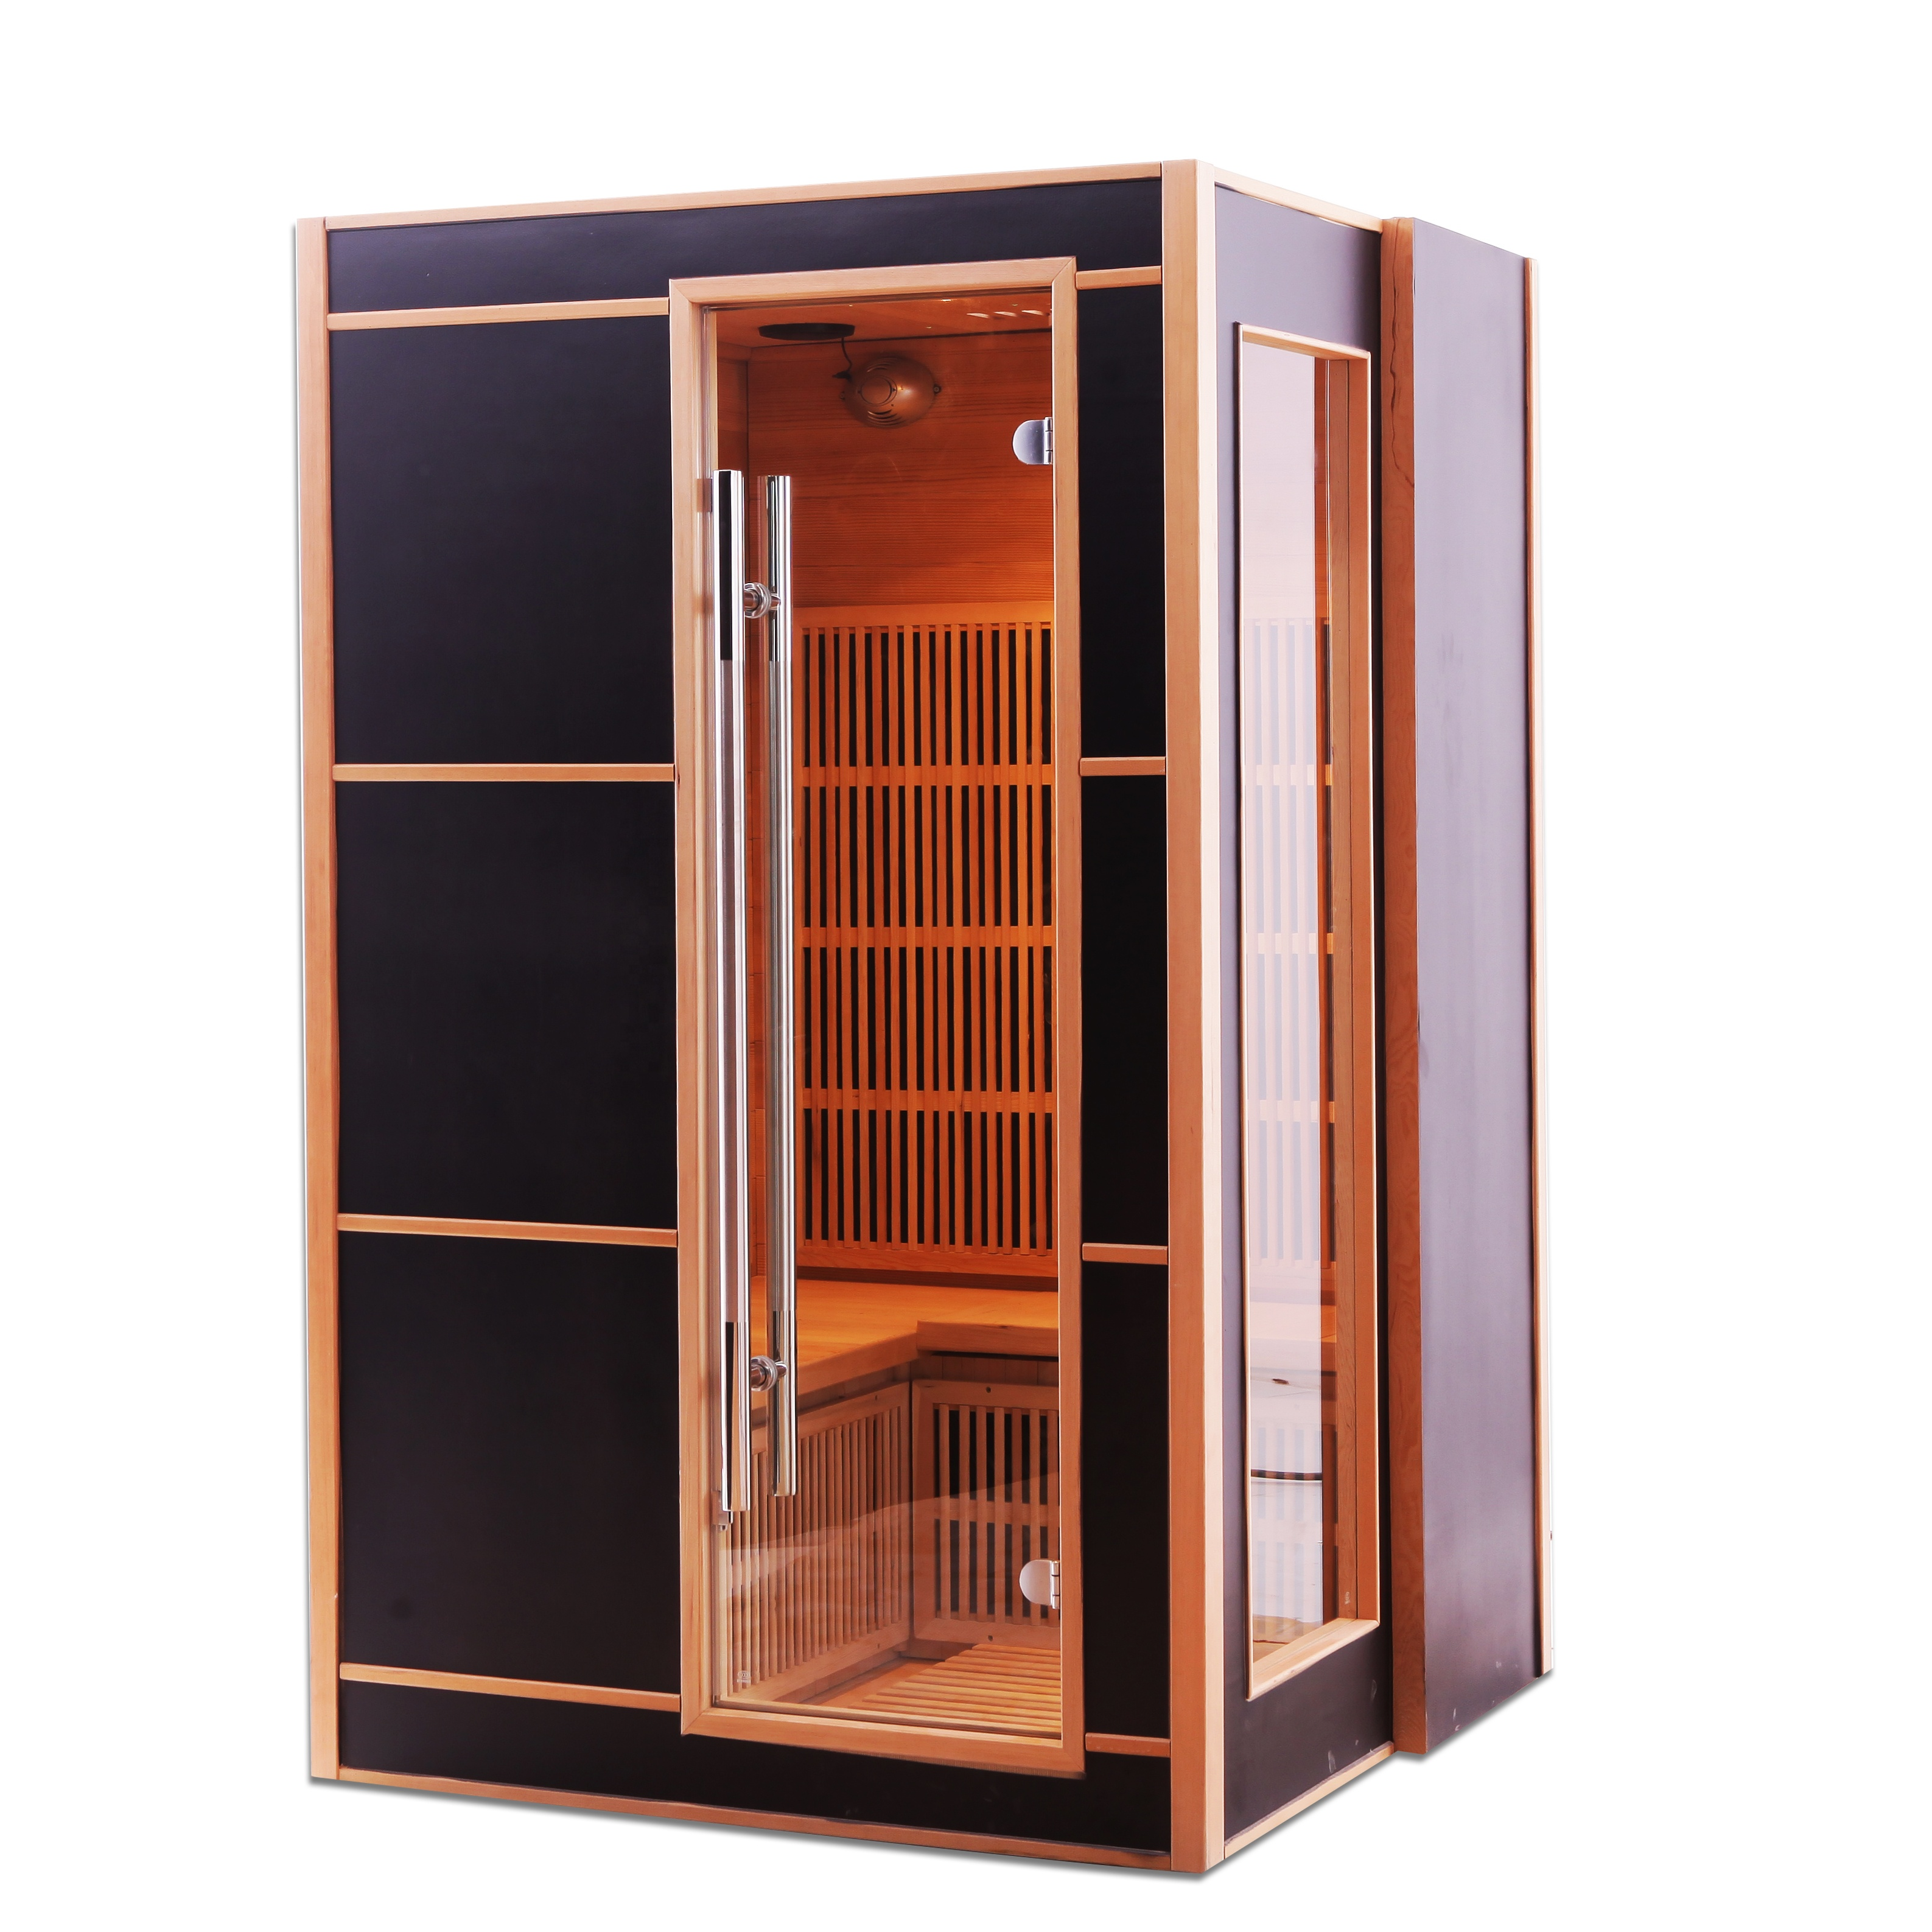 Infrared sauna korea/far infrared sauna spa dry/far infrared fitness sauna rooms